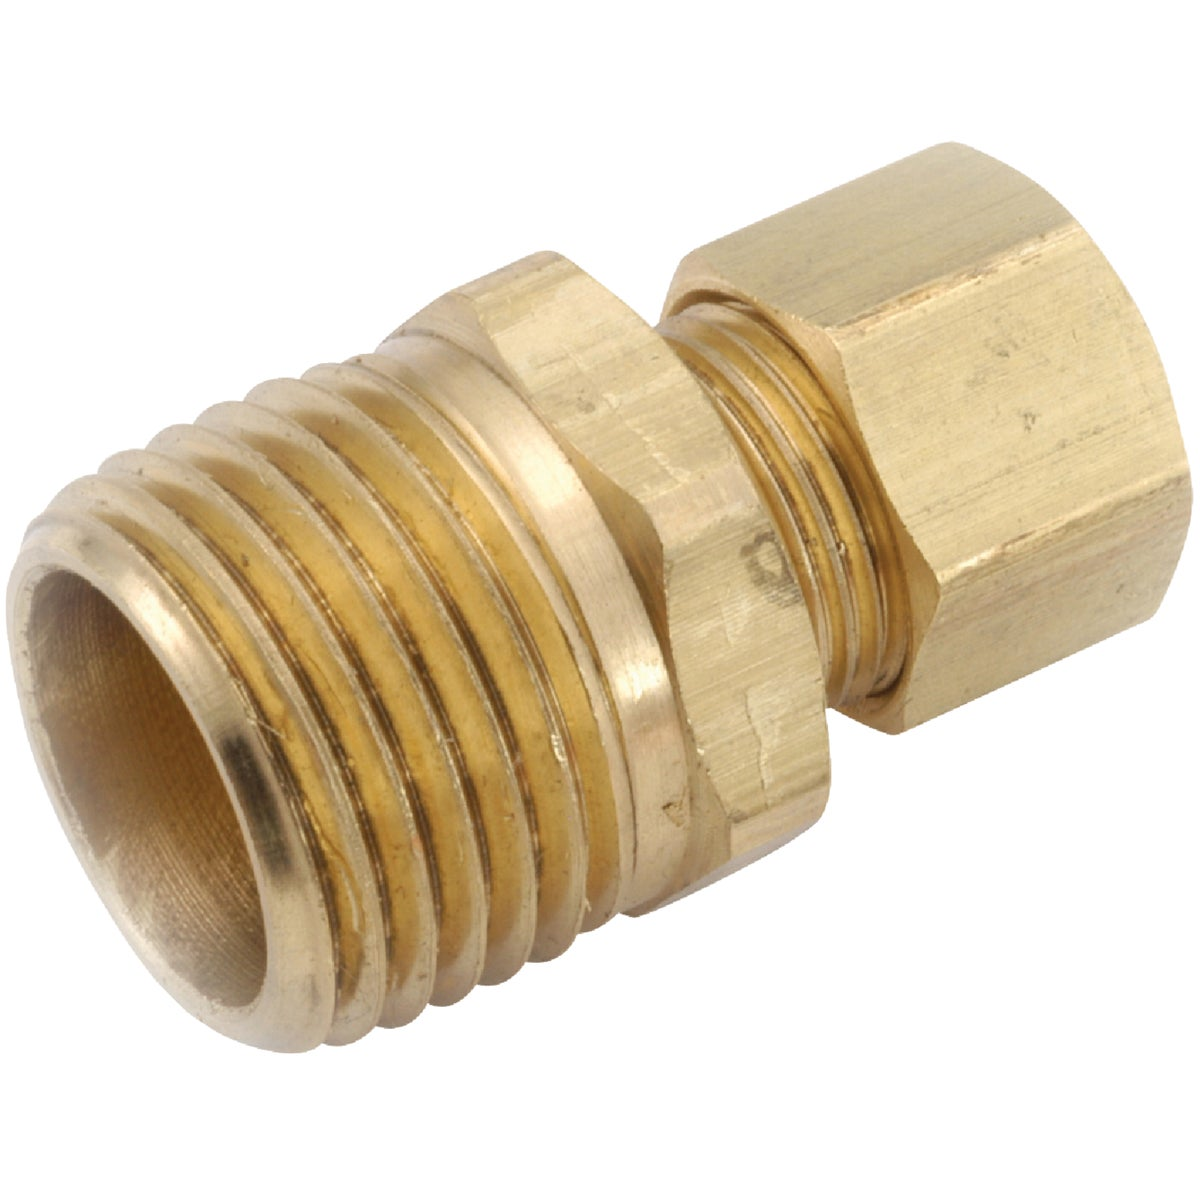 1/4X1/4 MALE CONNECTOR - 750068-0404 by Anderson Metals Corp